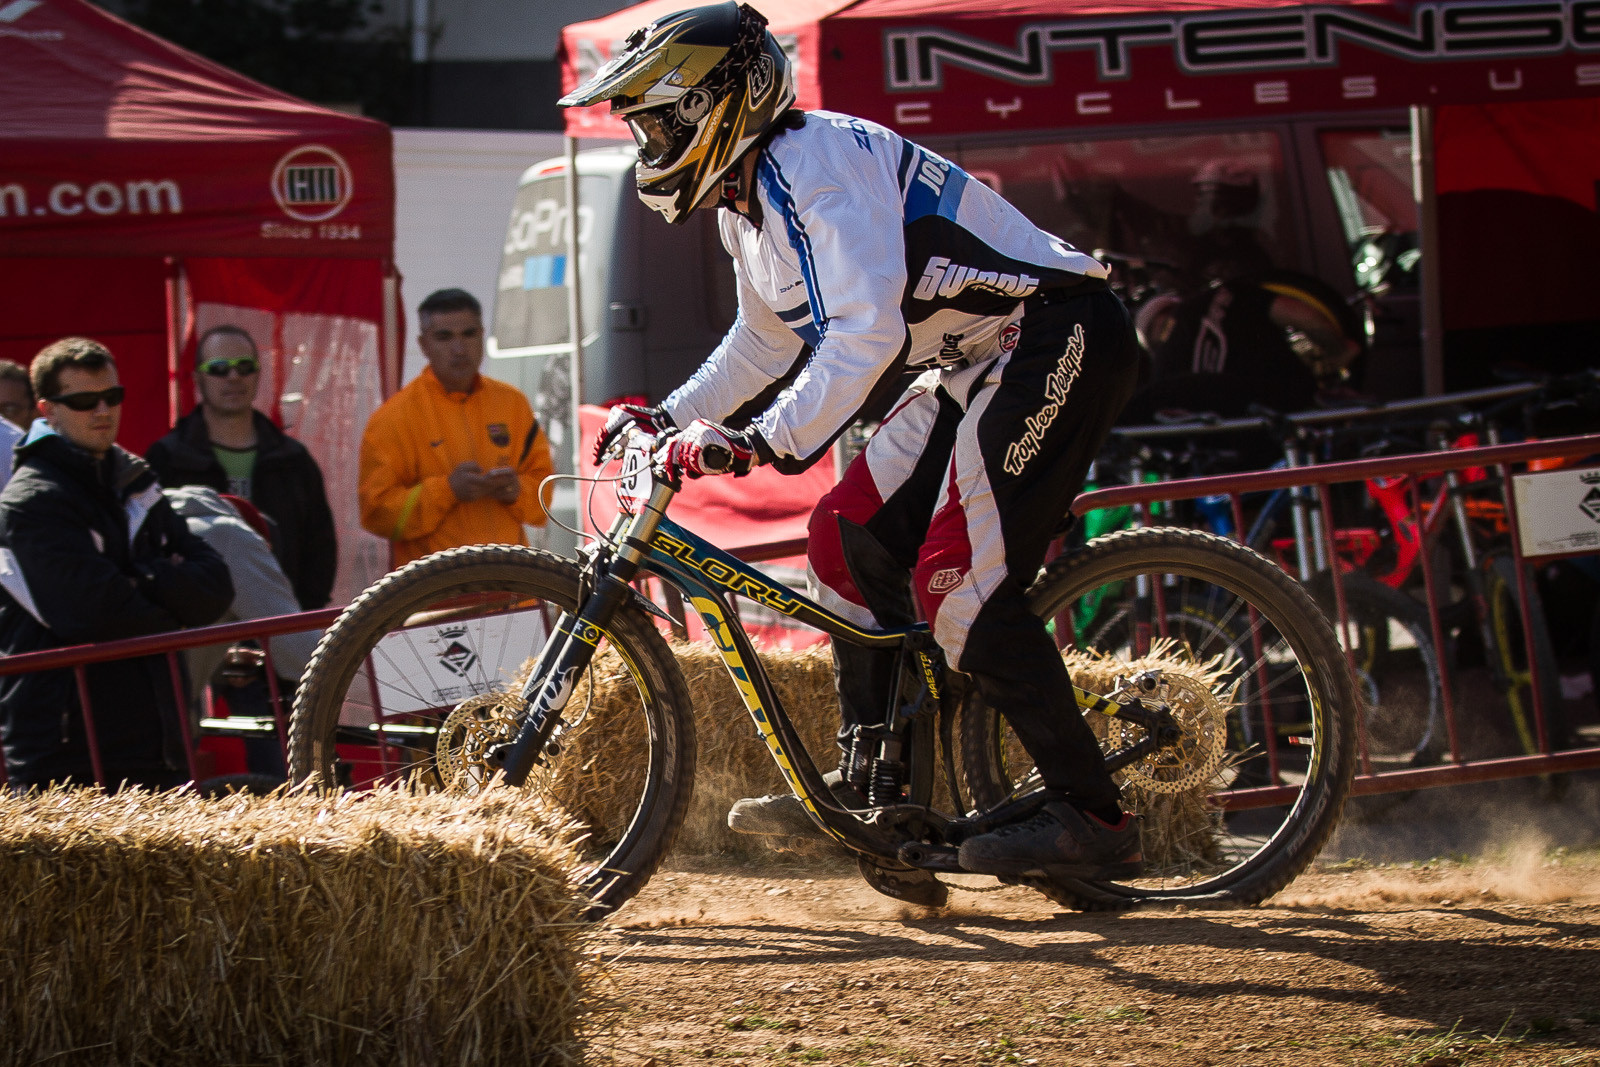 Huck to Flat! Giant Glory DH Bottom Out - Flat Landing Fails or Casing Carnage - 37 Downhill Bike G-Out Photos from Spain - Mountain Biking Pictures - Vital MTB